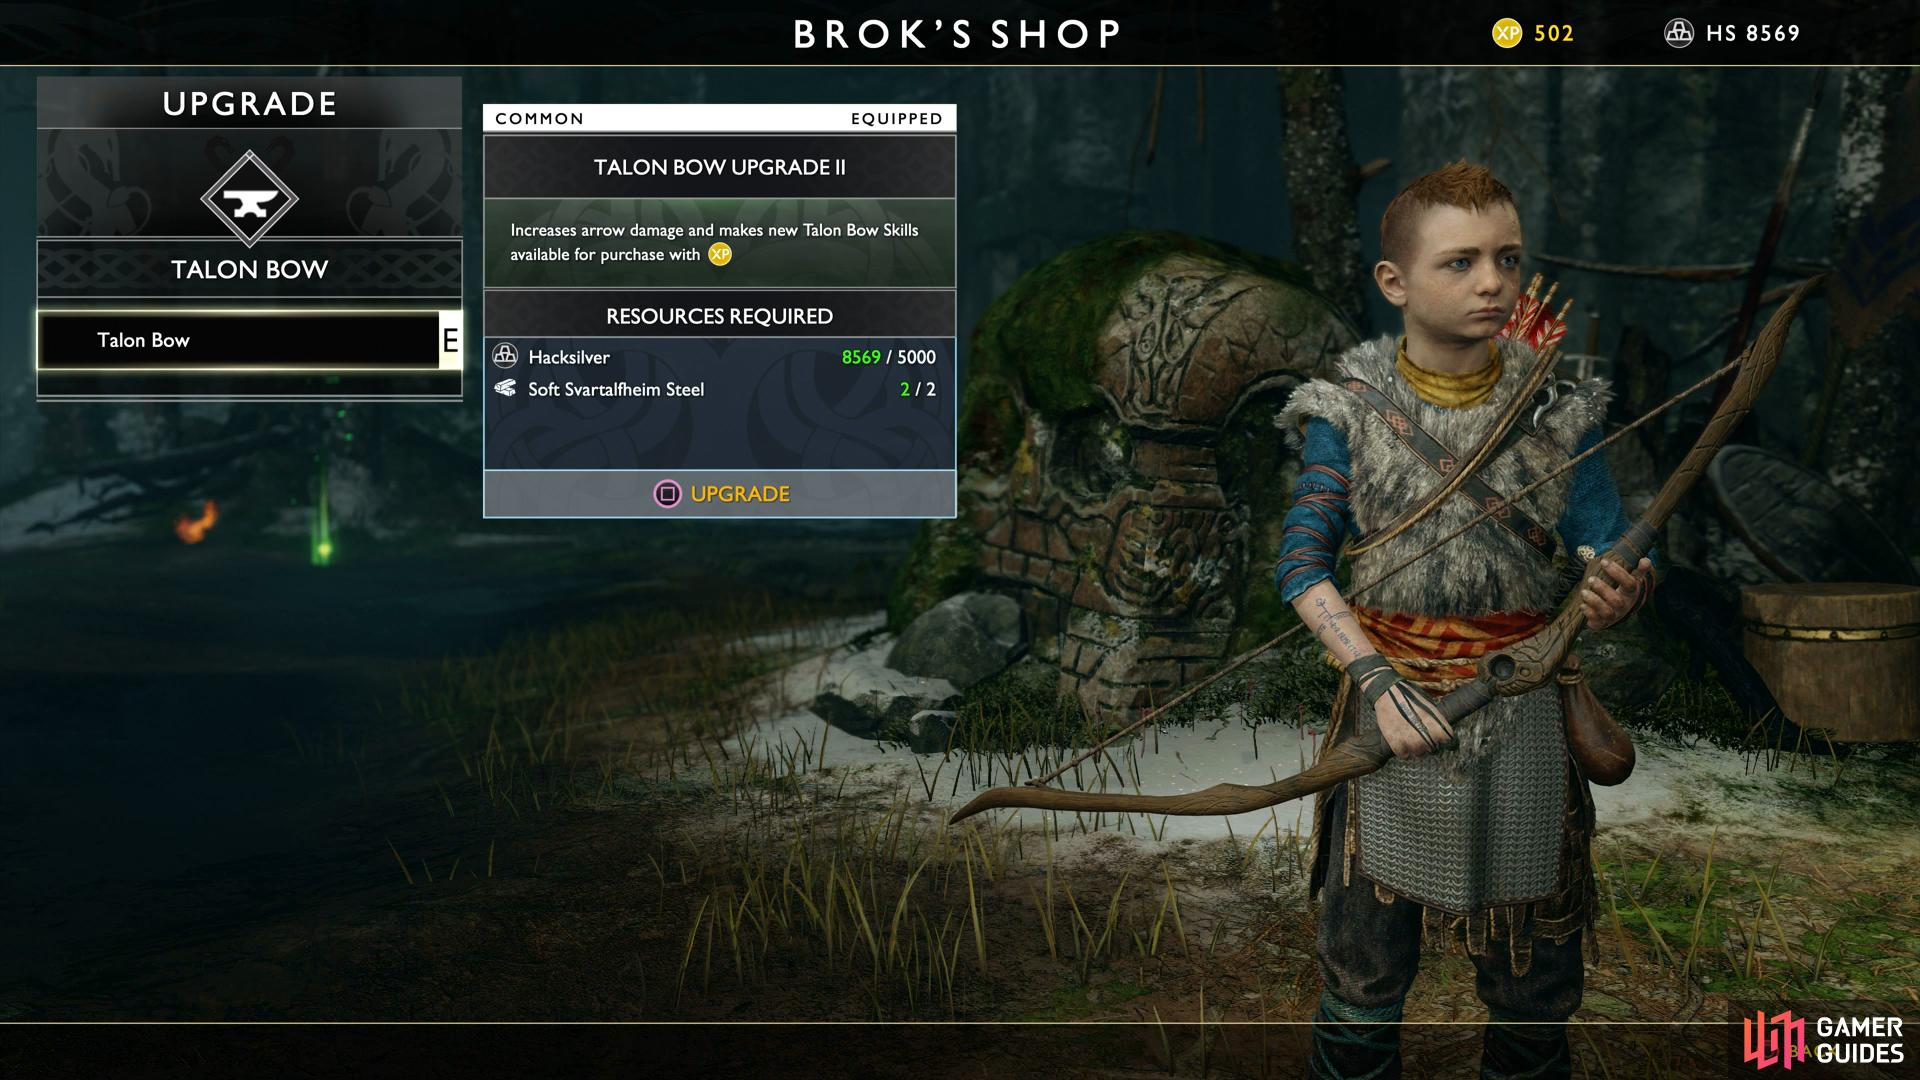 Be sure to purchase the first Talon Bow upgrade for Atreus.